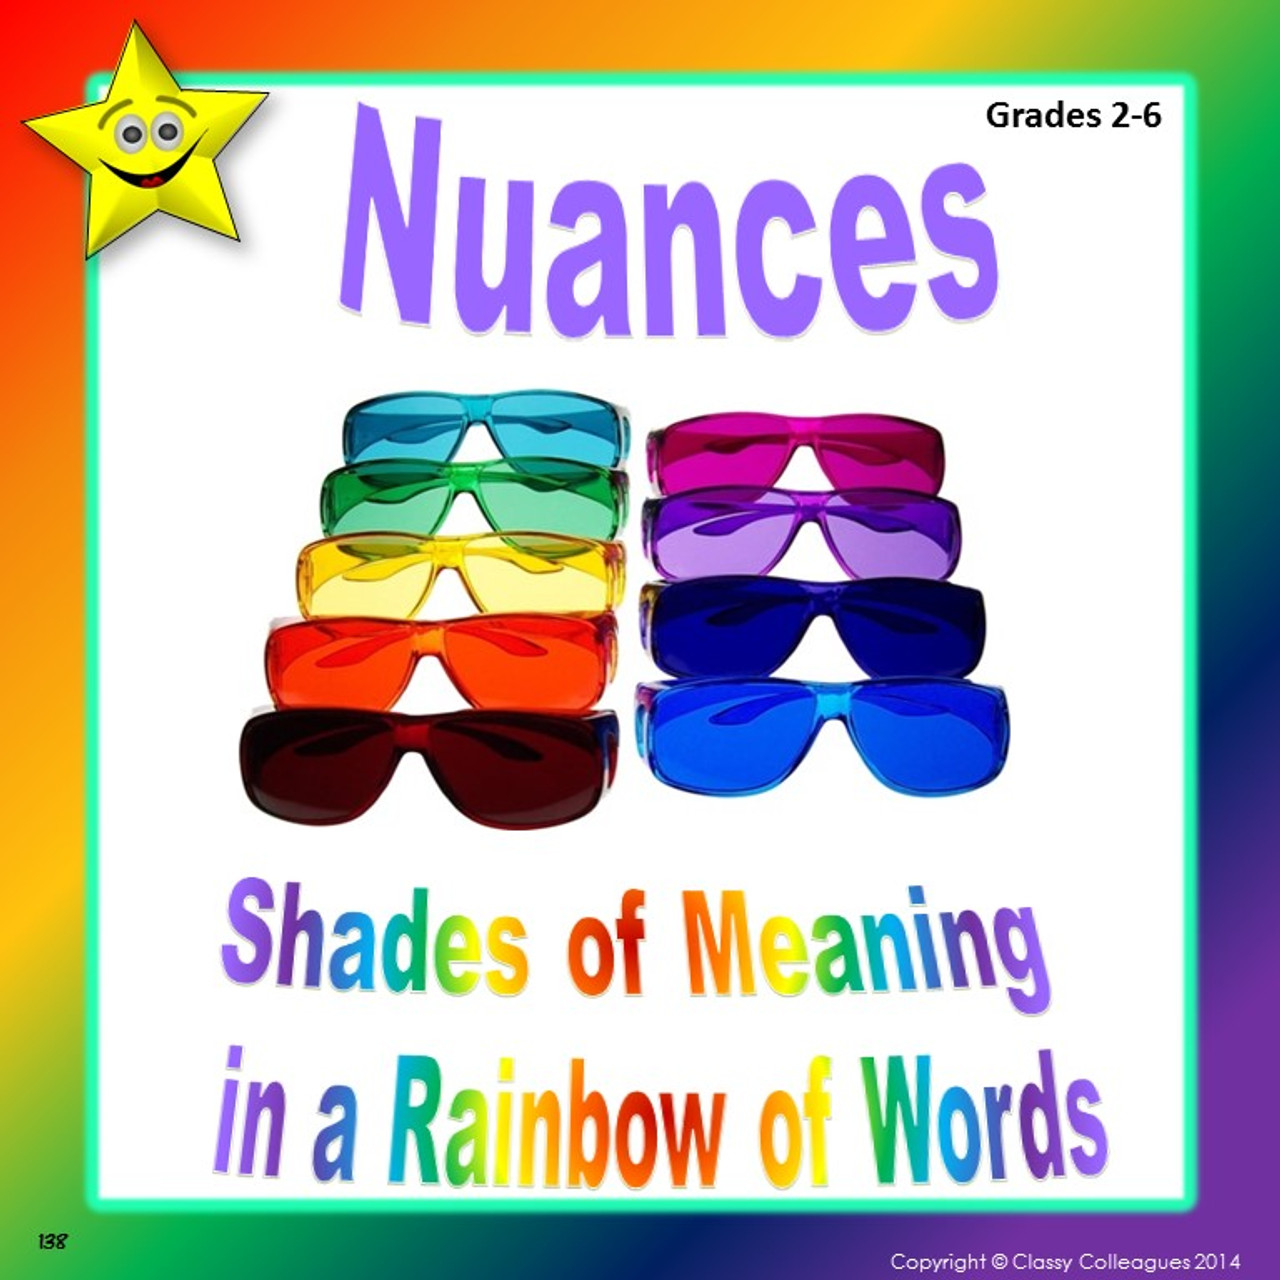 medium resolution of Nuances - Shades of Meaning in a Rainbow of Words - Amped Up Learning